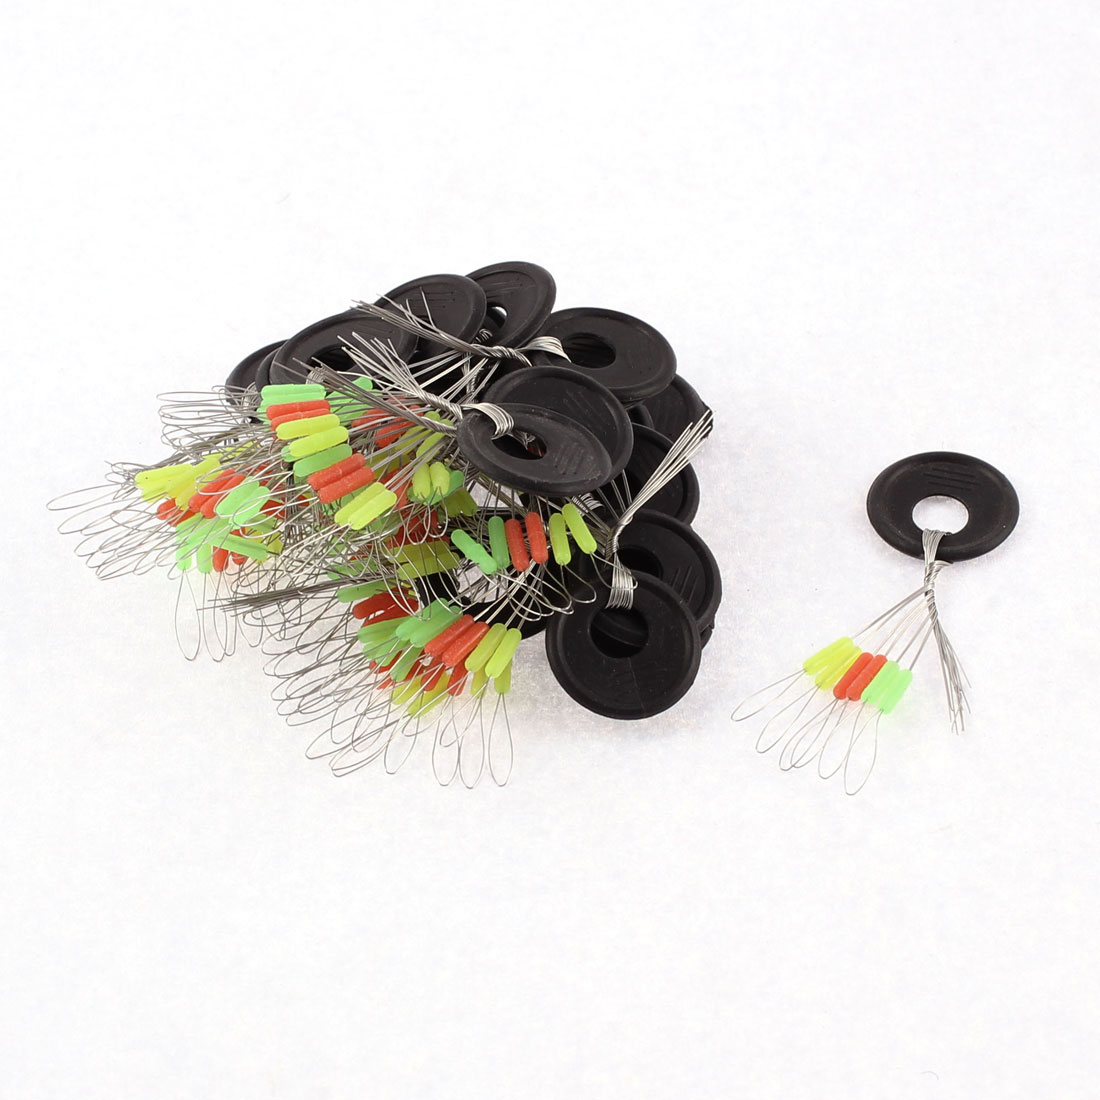 Unique Bargains 6 in 1 Rubber Multicolor Fishing Floaters Bobbers 45mm Long 25 Pcs by